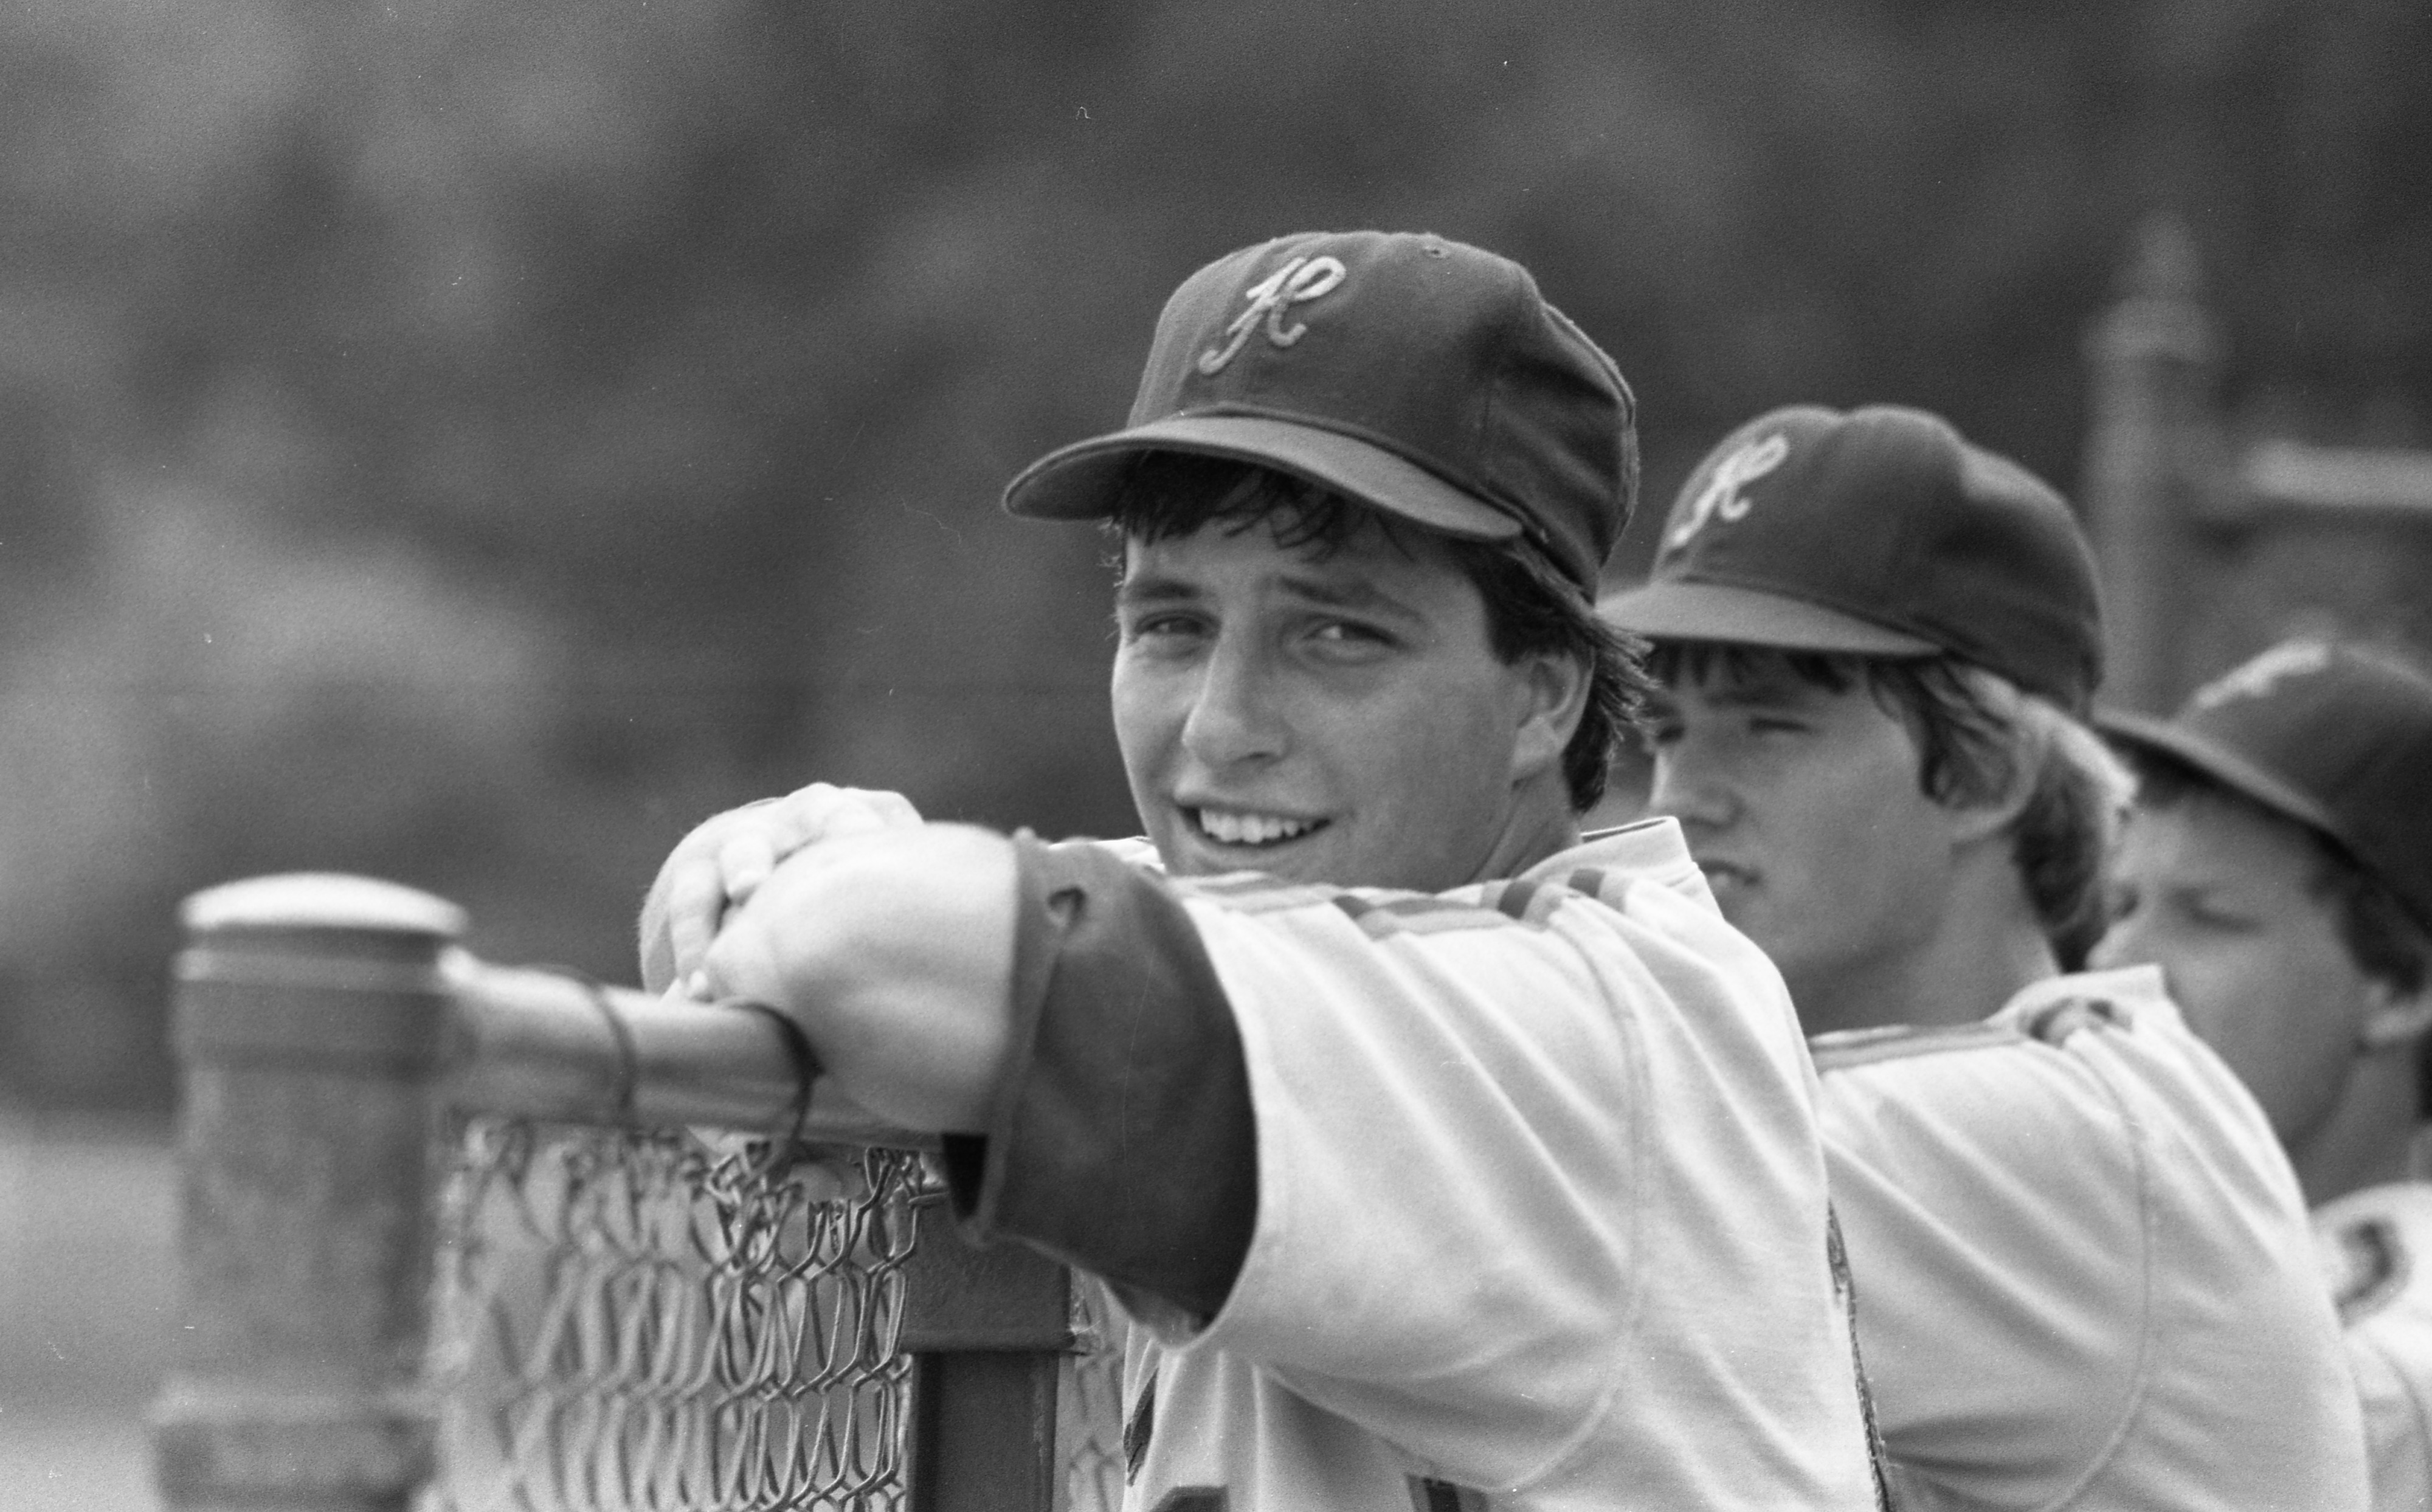 David Margolis Relaxes After Scoring For The Huron High School Baseball Team, June 1984 image